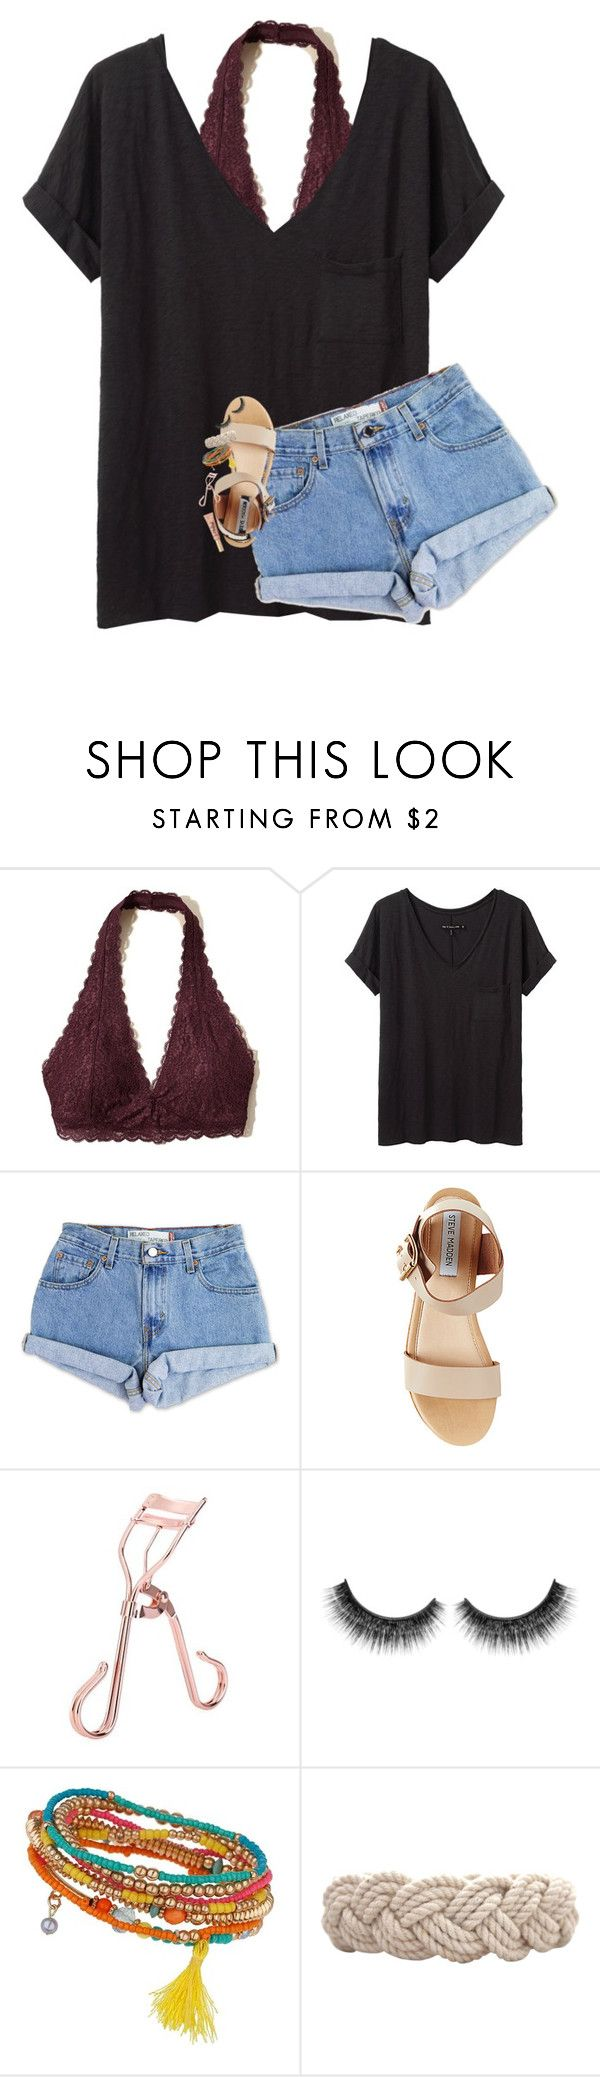 """went shopping today"" by lindsaygreys ❤ liked on Polyvore featuring Hollister Co., rag & bone/JEAN, Levi's, Steve Madden, Miss Selfridge and Swell"